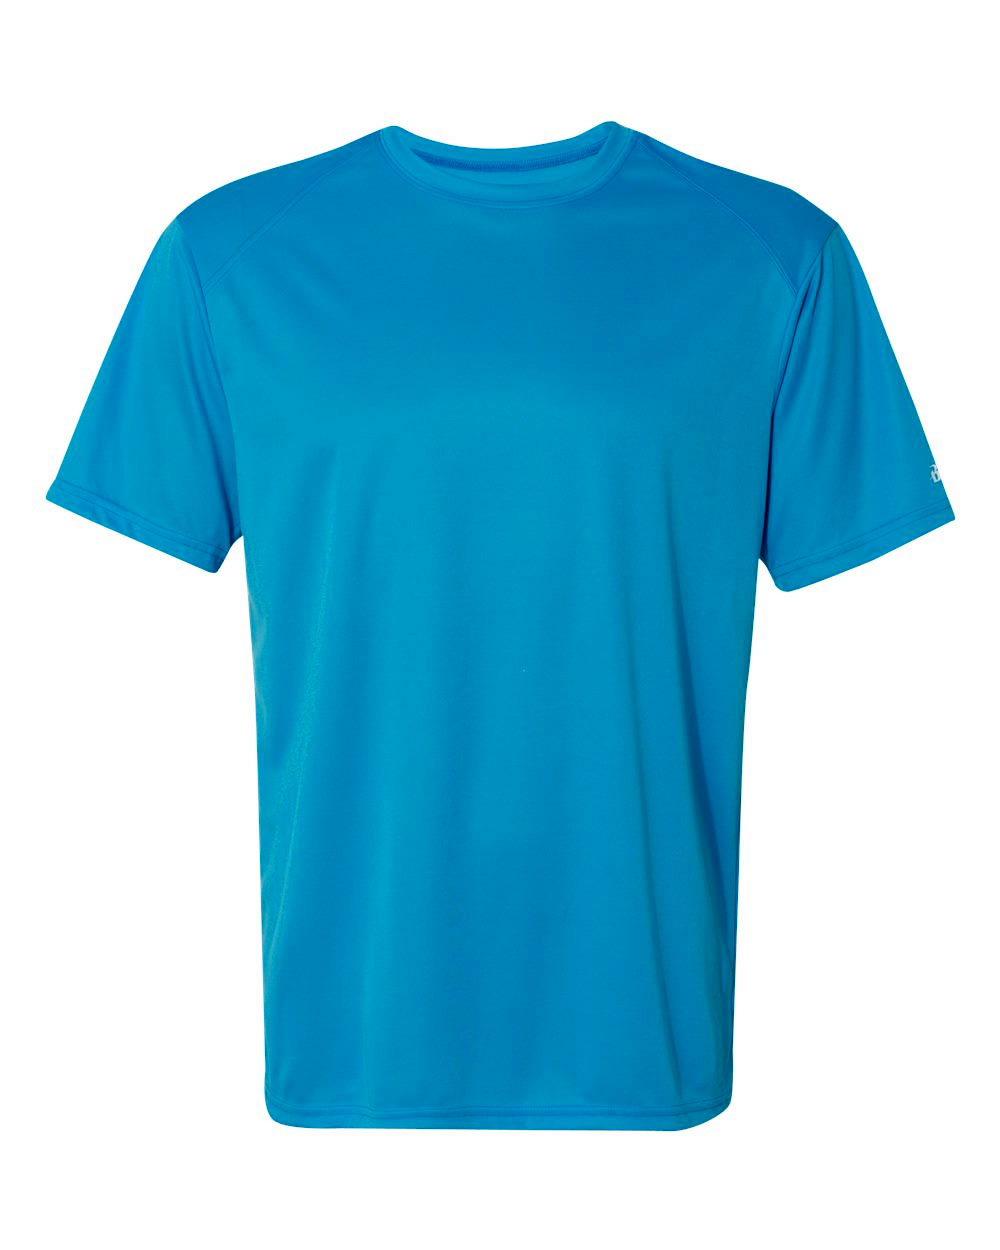 Custom Made Dry Performance T Shirts And Custom Made Dry Performance